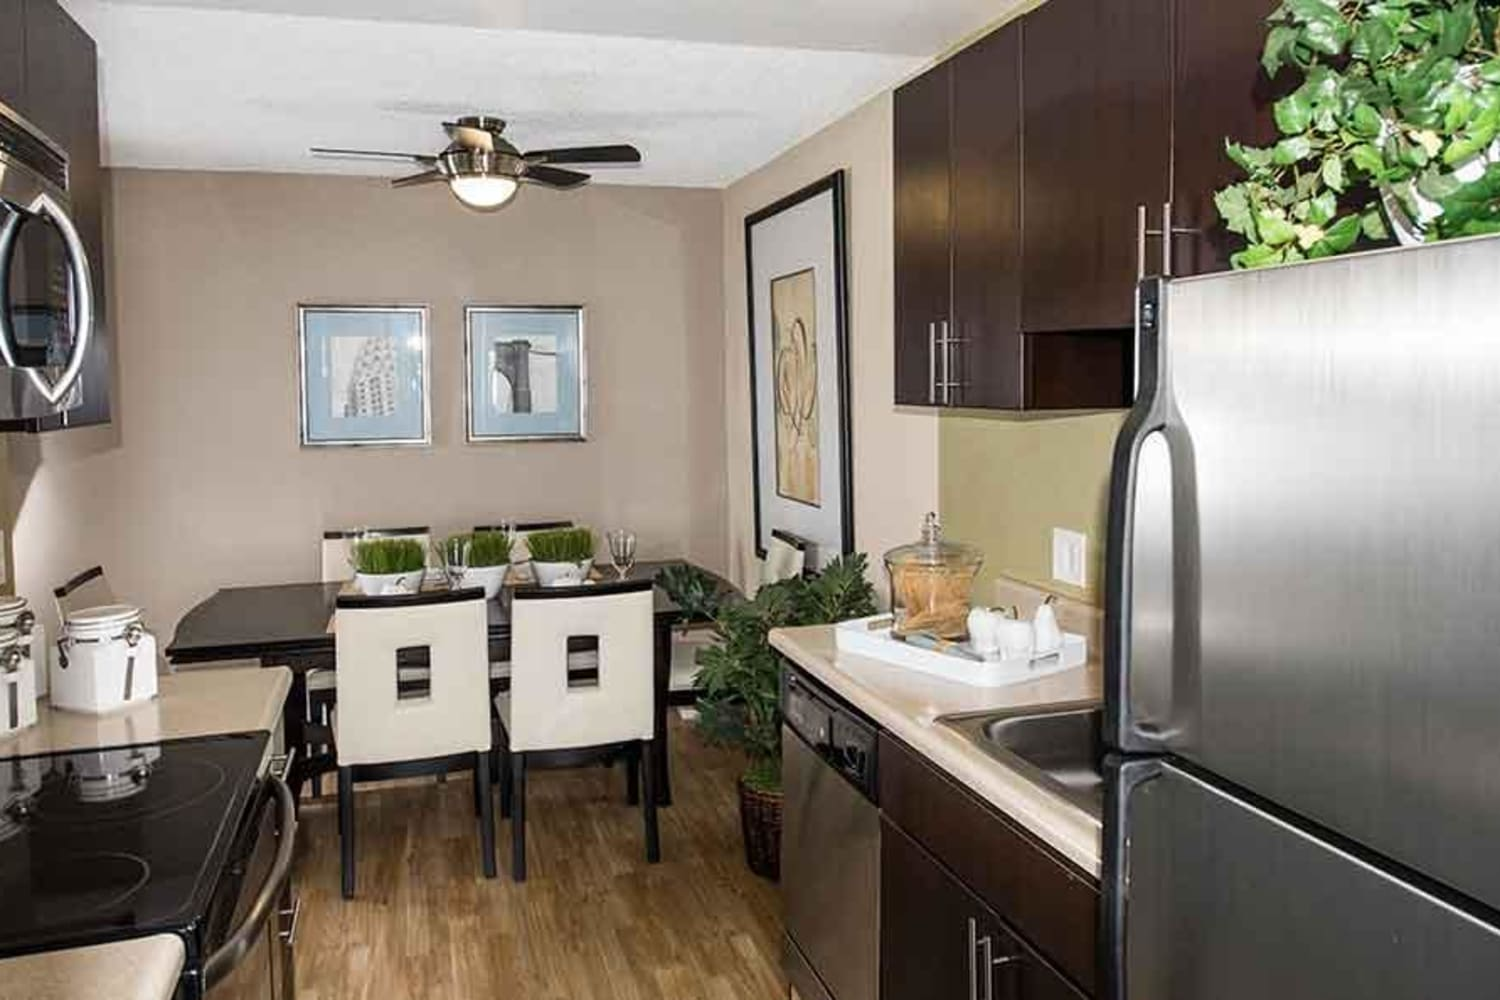 Kitchen with modern finishes at Harbor Cove Apartments in Foster City, California